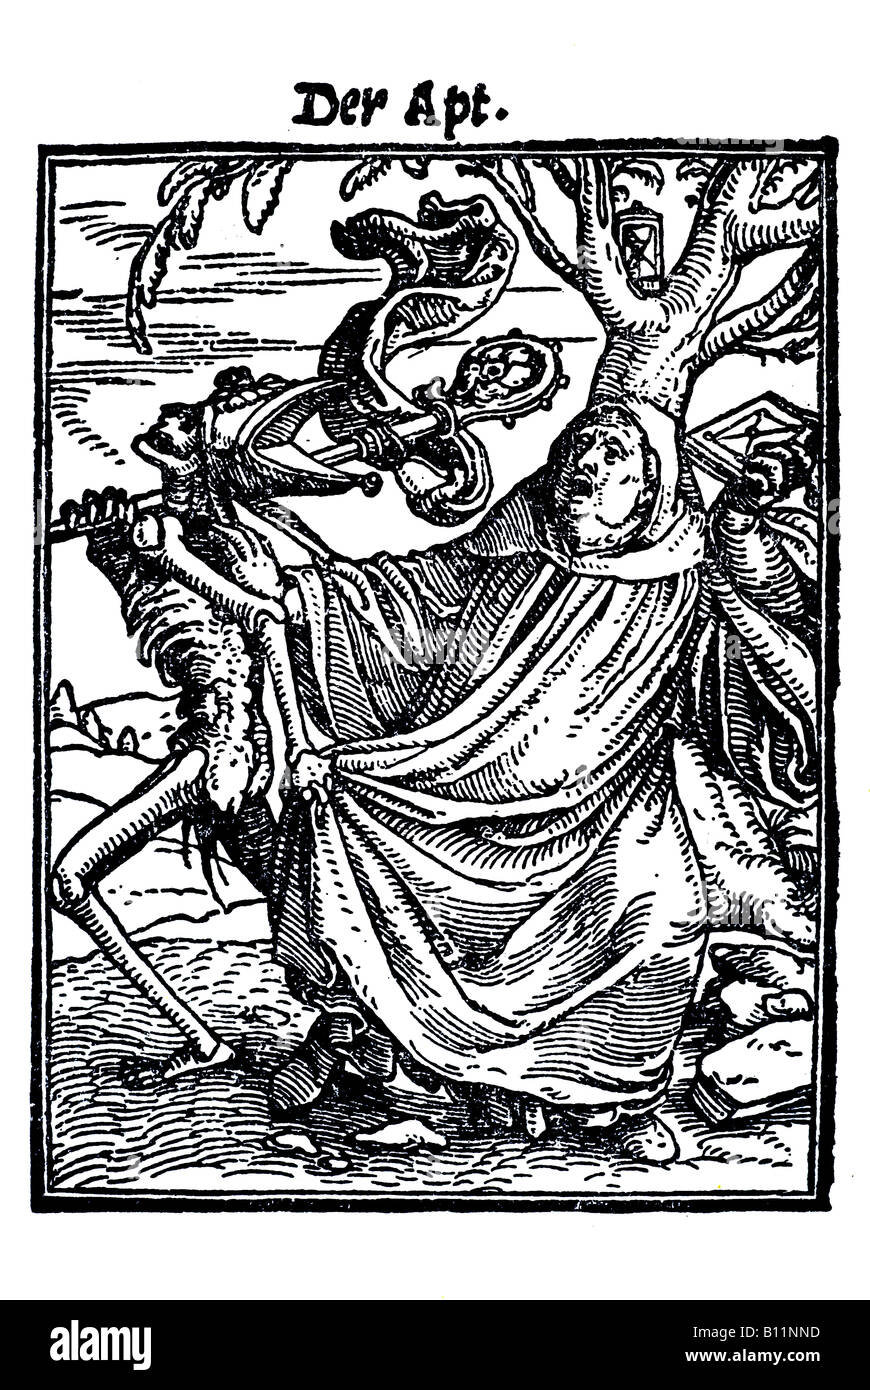 The abbot, Hans Holbein the younger, Danse Macabre, 1538, Germany